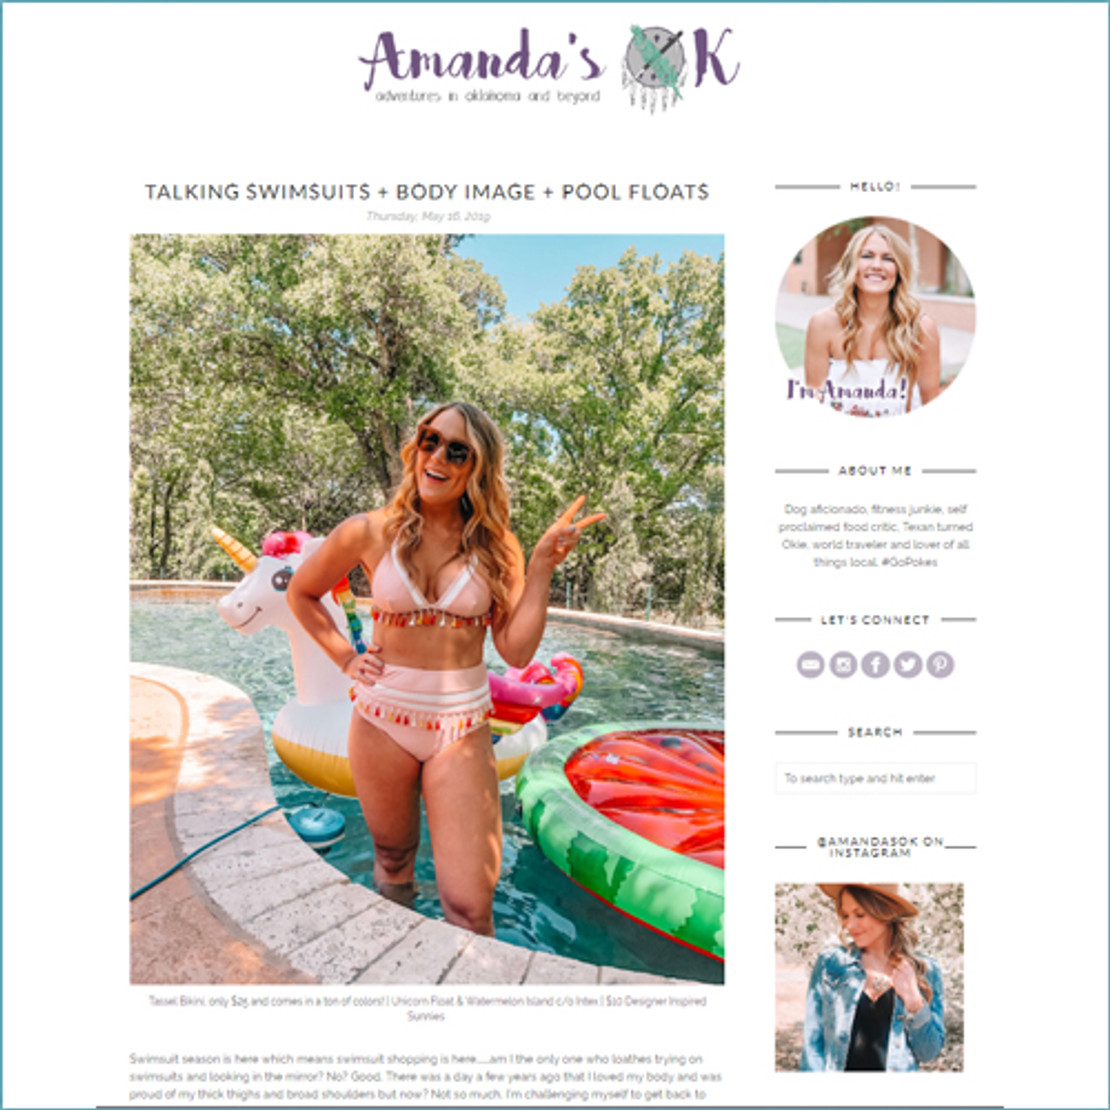 5/17/2019 - Check out lifestyle blogger Amanda as she talks about swimsuits and her favorite INTEX POOL FLOATS!